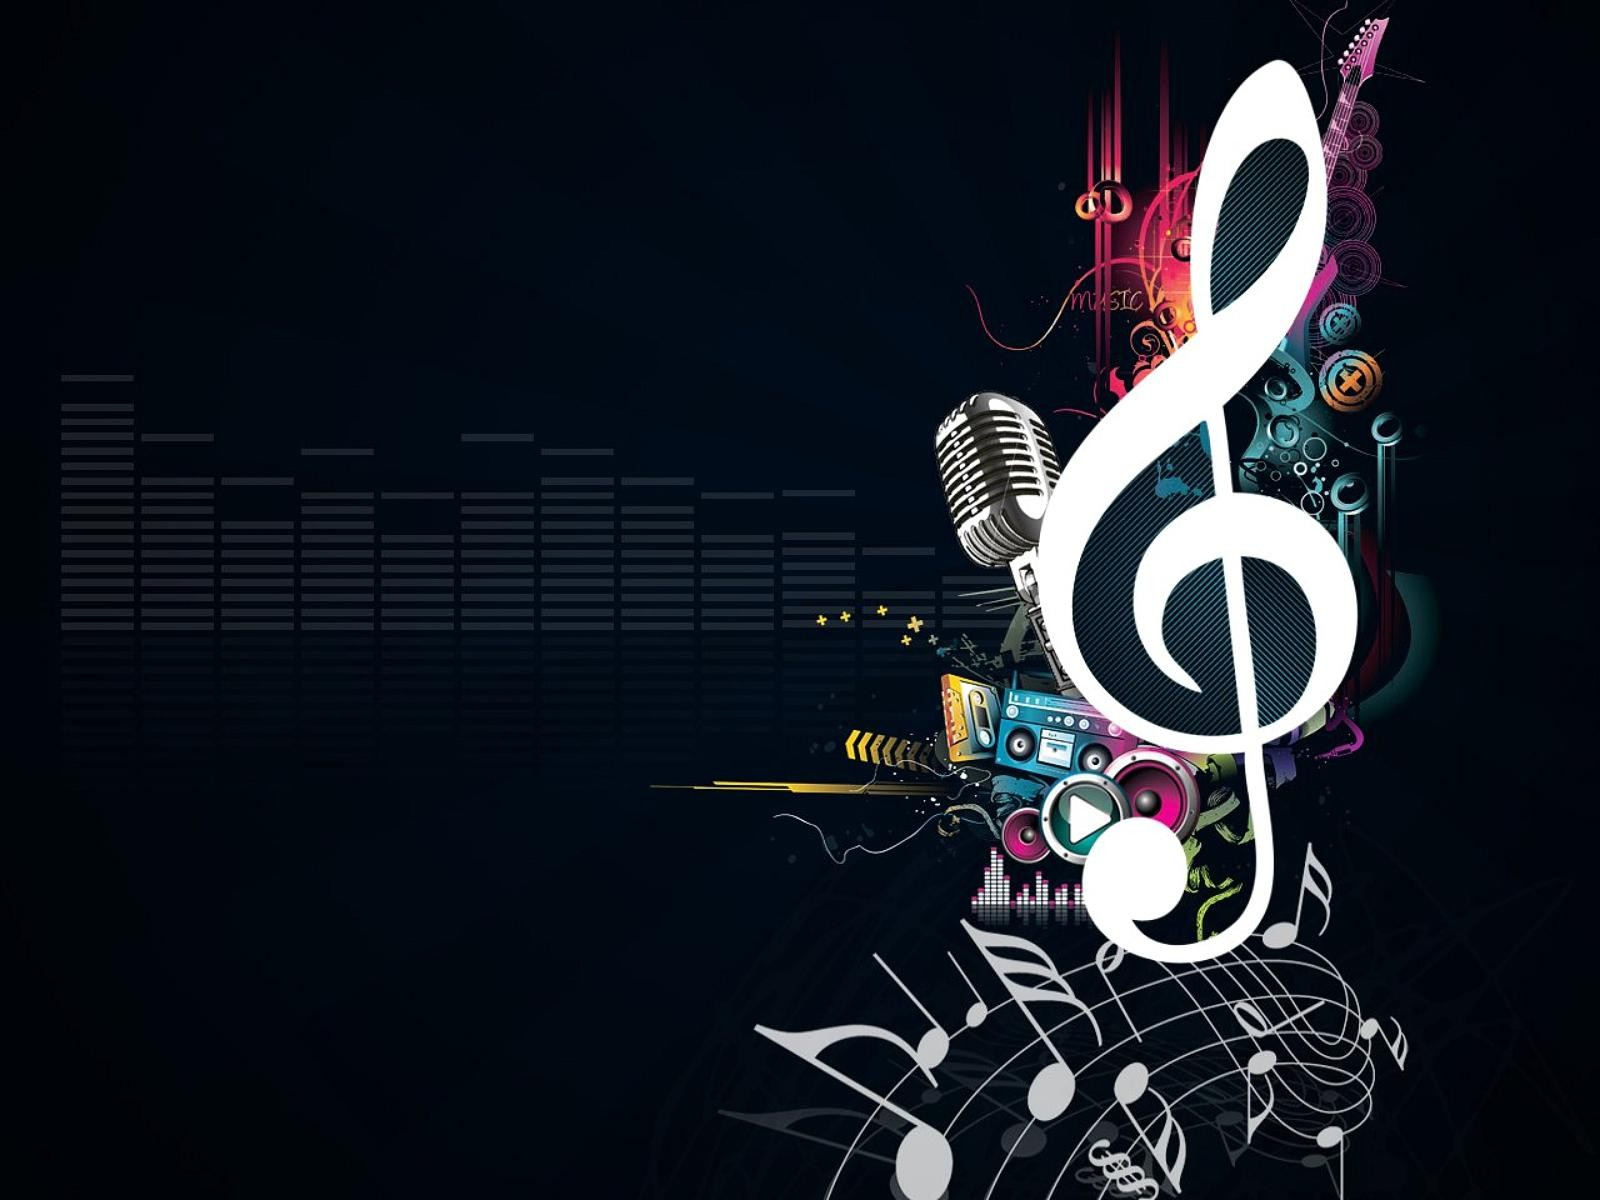 Music Wallpapers Hd Background Wallpaper 31 | freehighresolutionimages.org